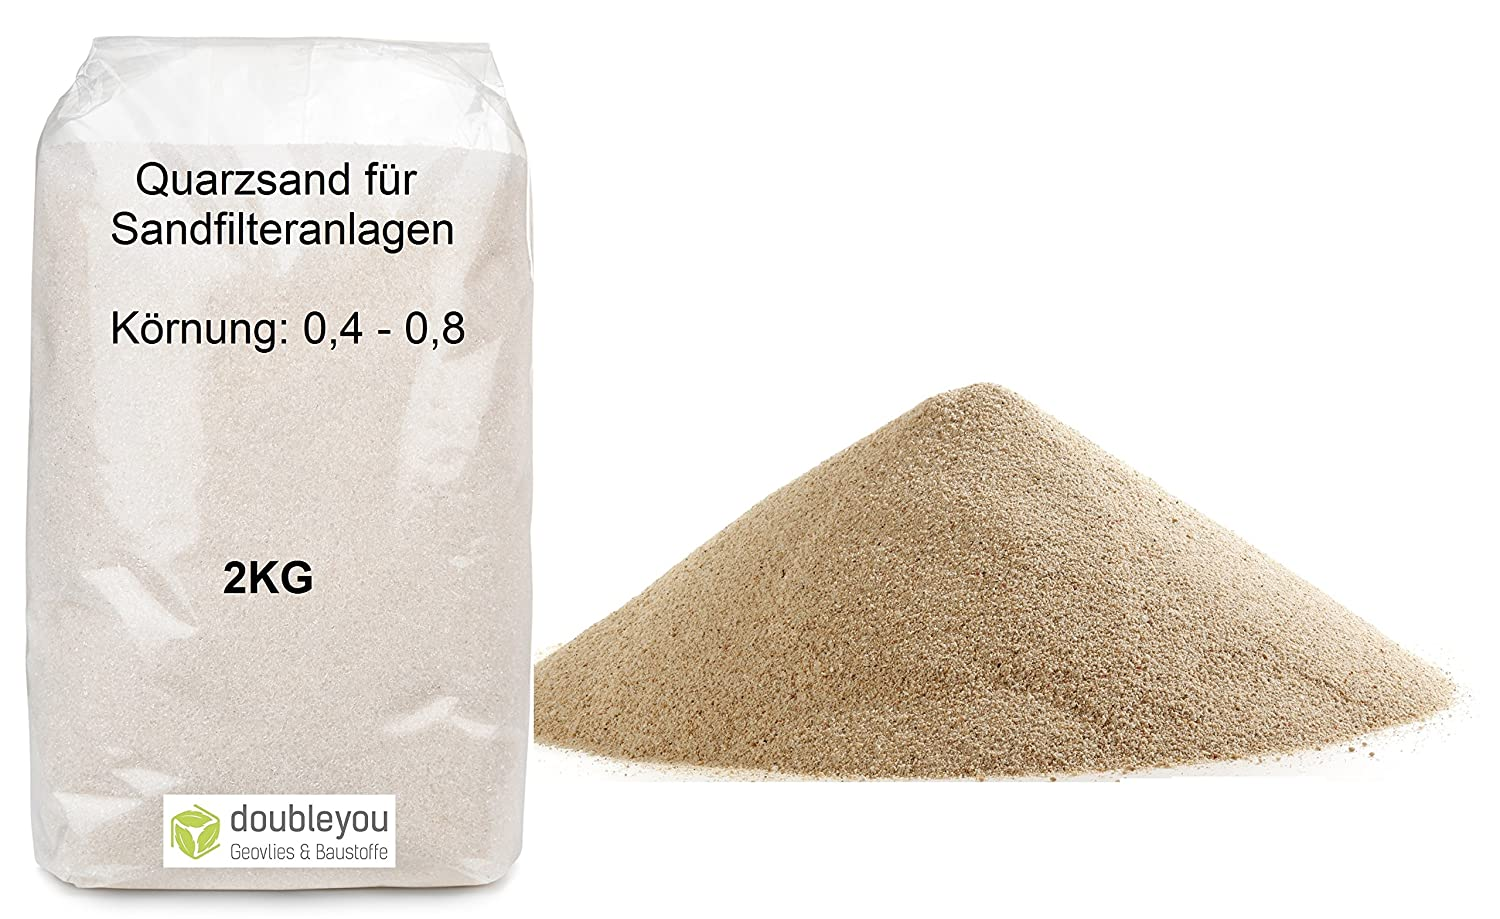 Quartz Sand for Pool Sand Filter Pumps 0.4 – 0.8 mm